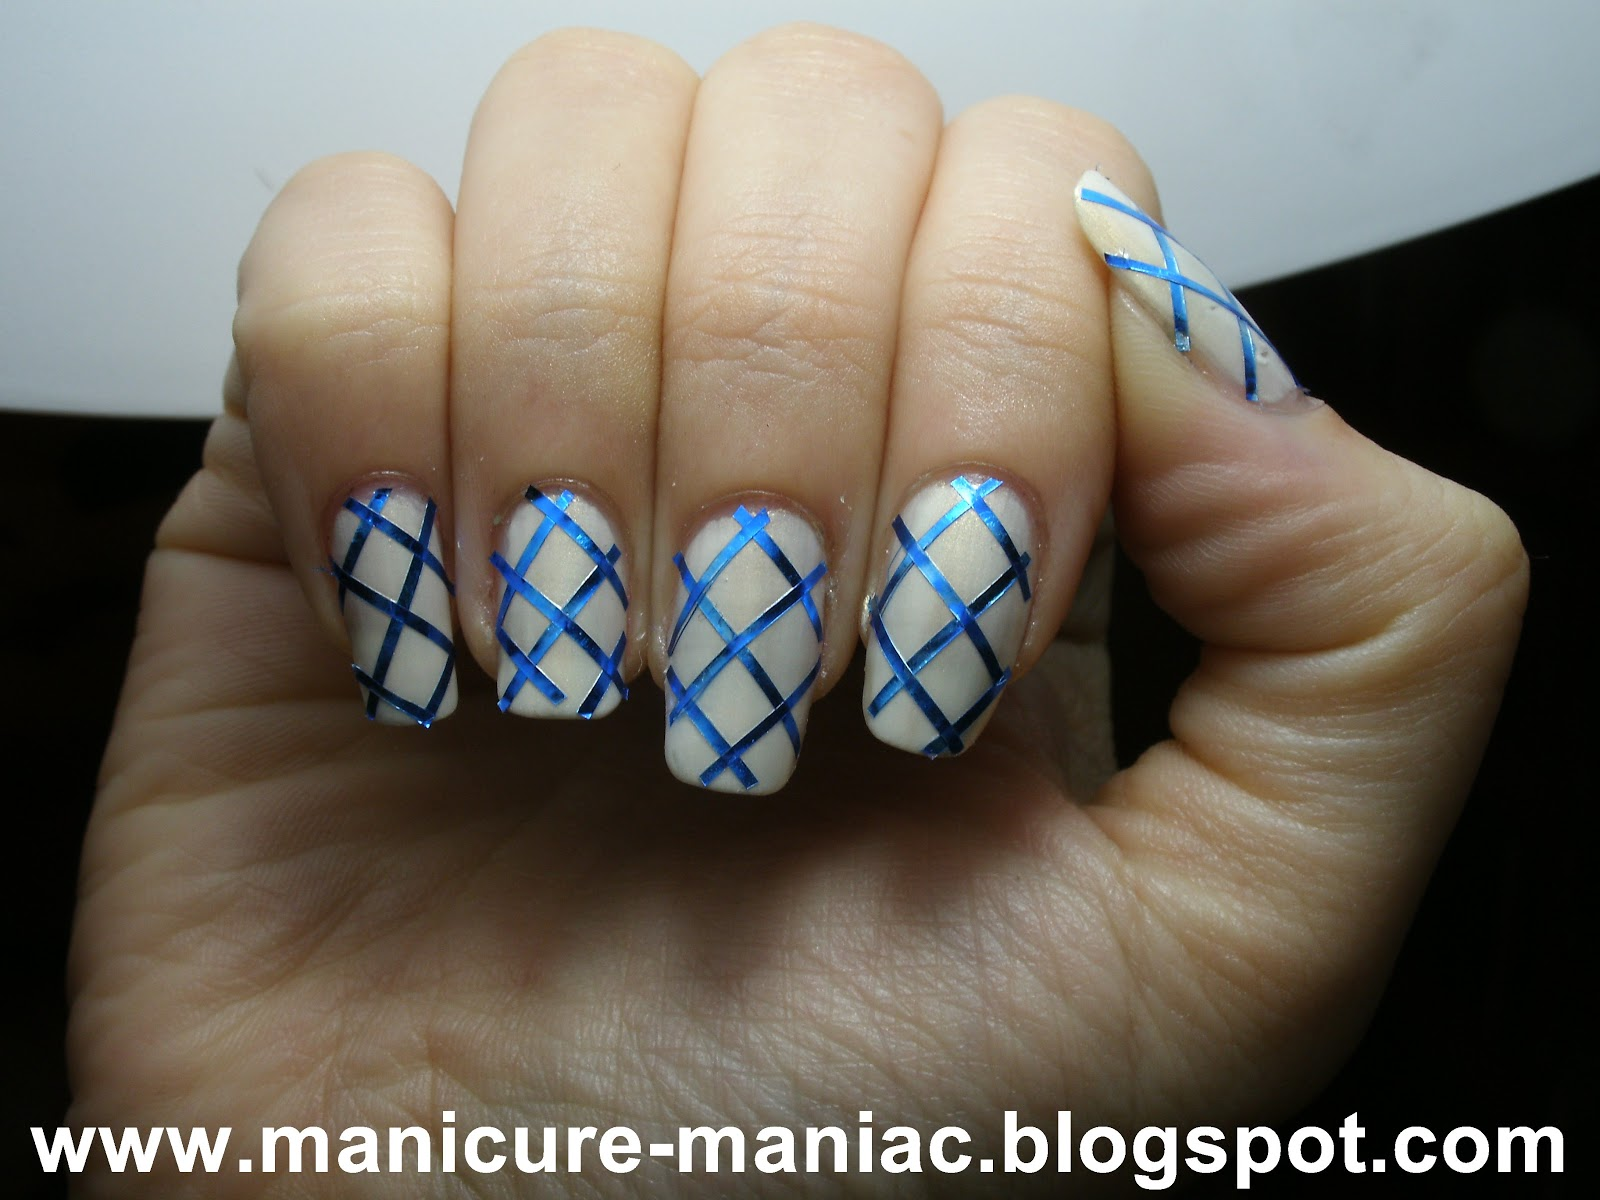 To create this look, I used Nails Inc Old Queen Street, then used a